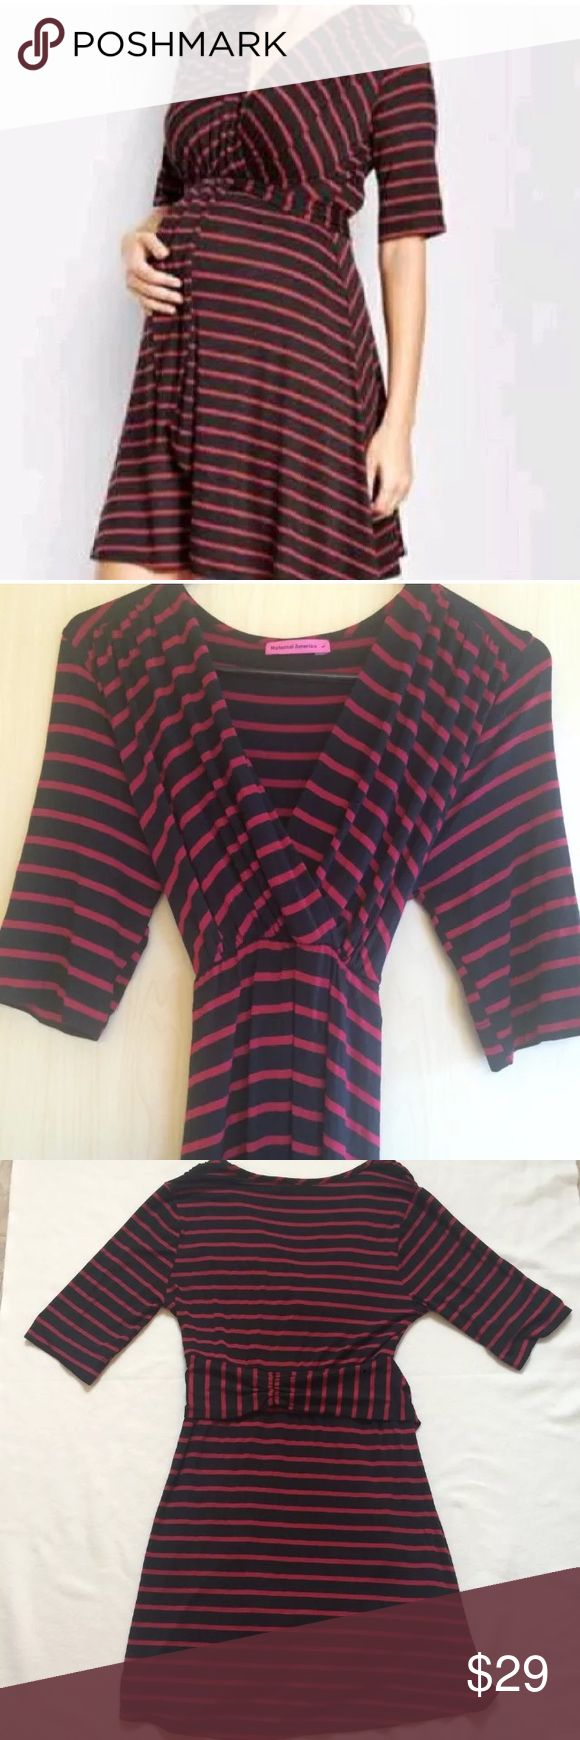 """Maternal America Maternity Dress Excellent used condition, no flaws Colors- navy and wine red  Top portion of dress is fitted, bottom is loose and flowy   Vibrant stripes energize a soft, stretch-knit dress styled with a nursing-friendly V-neck. Dual waist ties can be worn in the front or back for a versatile style that flatters your shapely silhouette.  37 1/2"""" length (size Large) 96% rayon, 4% spandex. Hand wash cold, dry flat. made in the USA. Large= pre pregnancy 12-14 Retail $100…"""